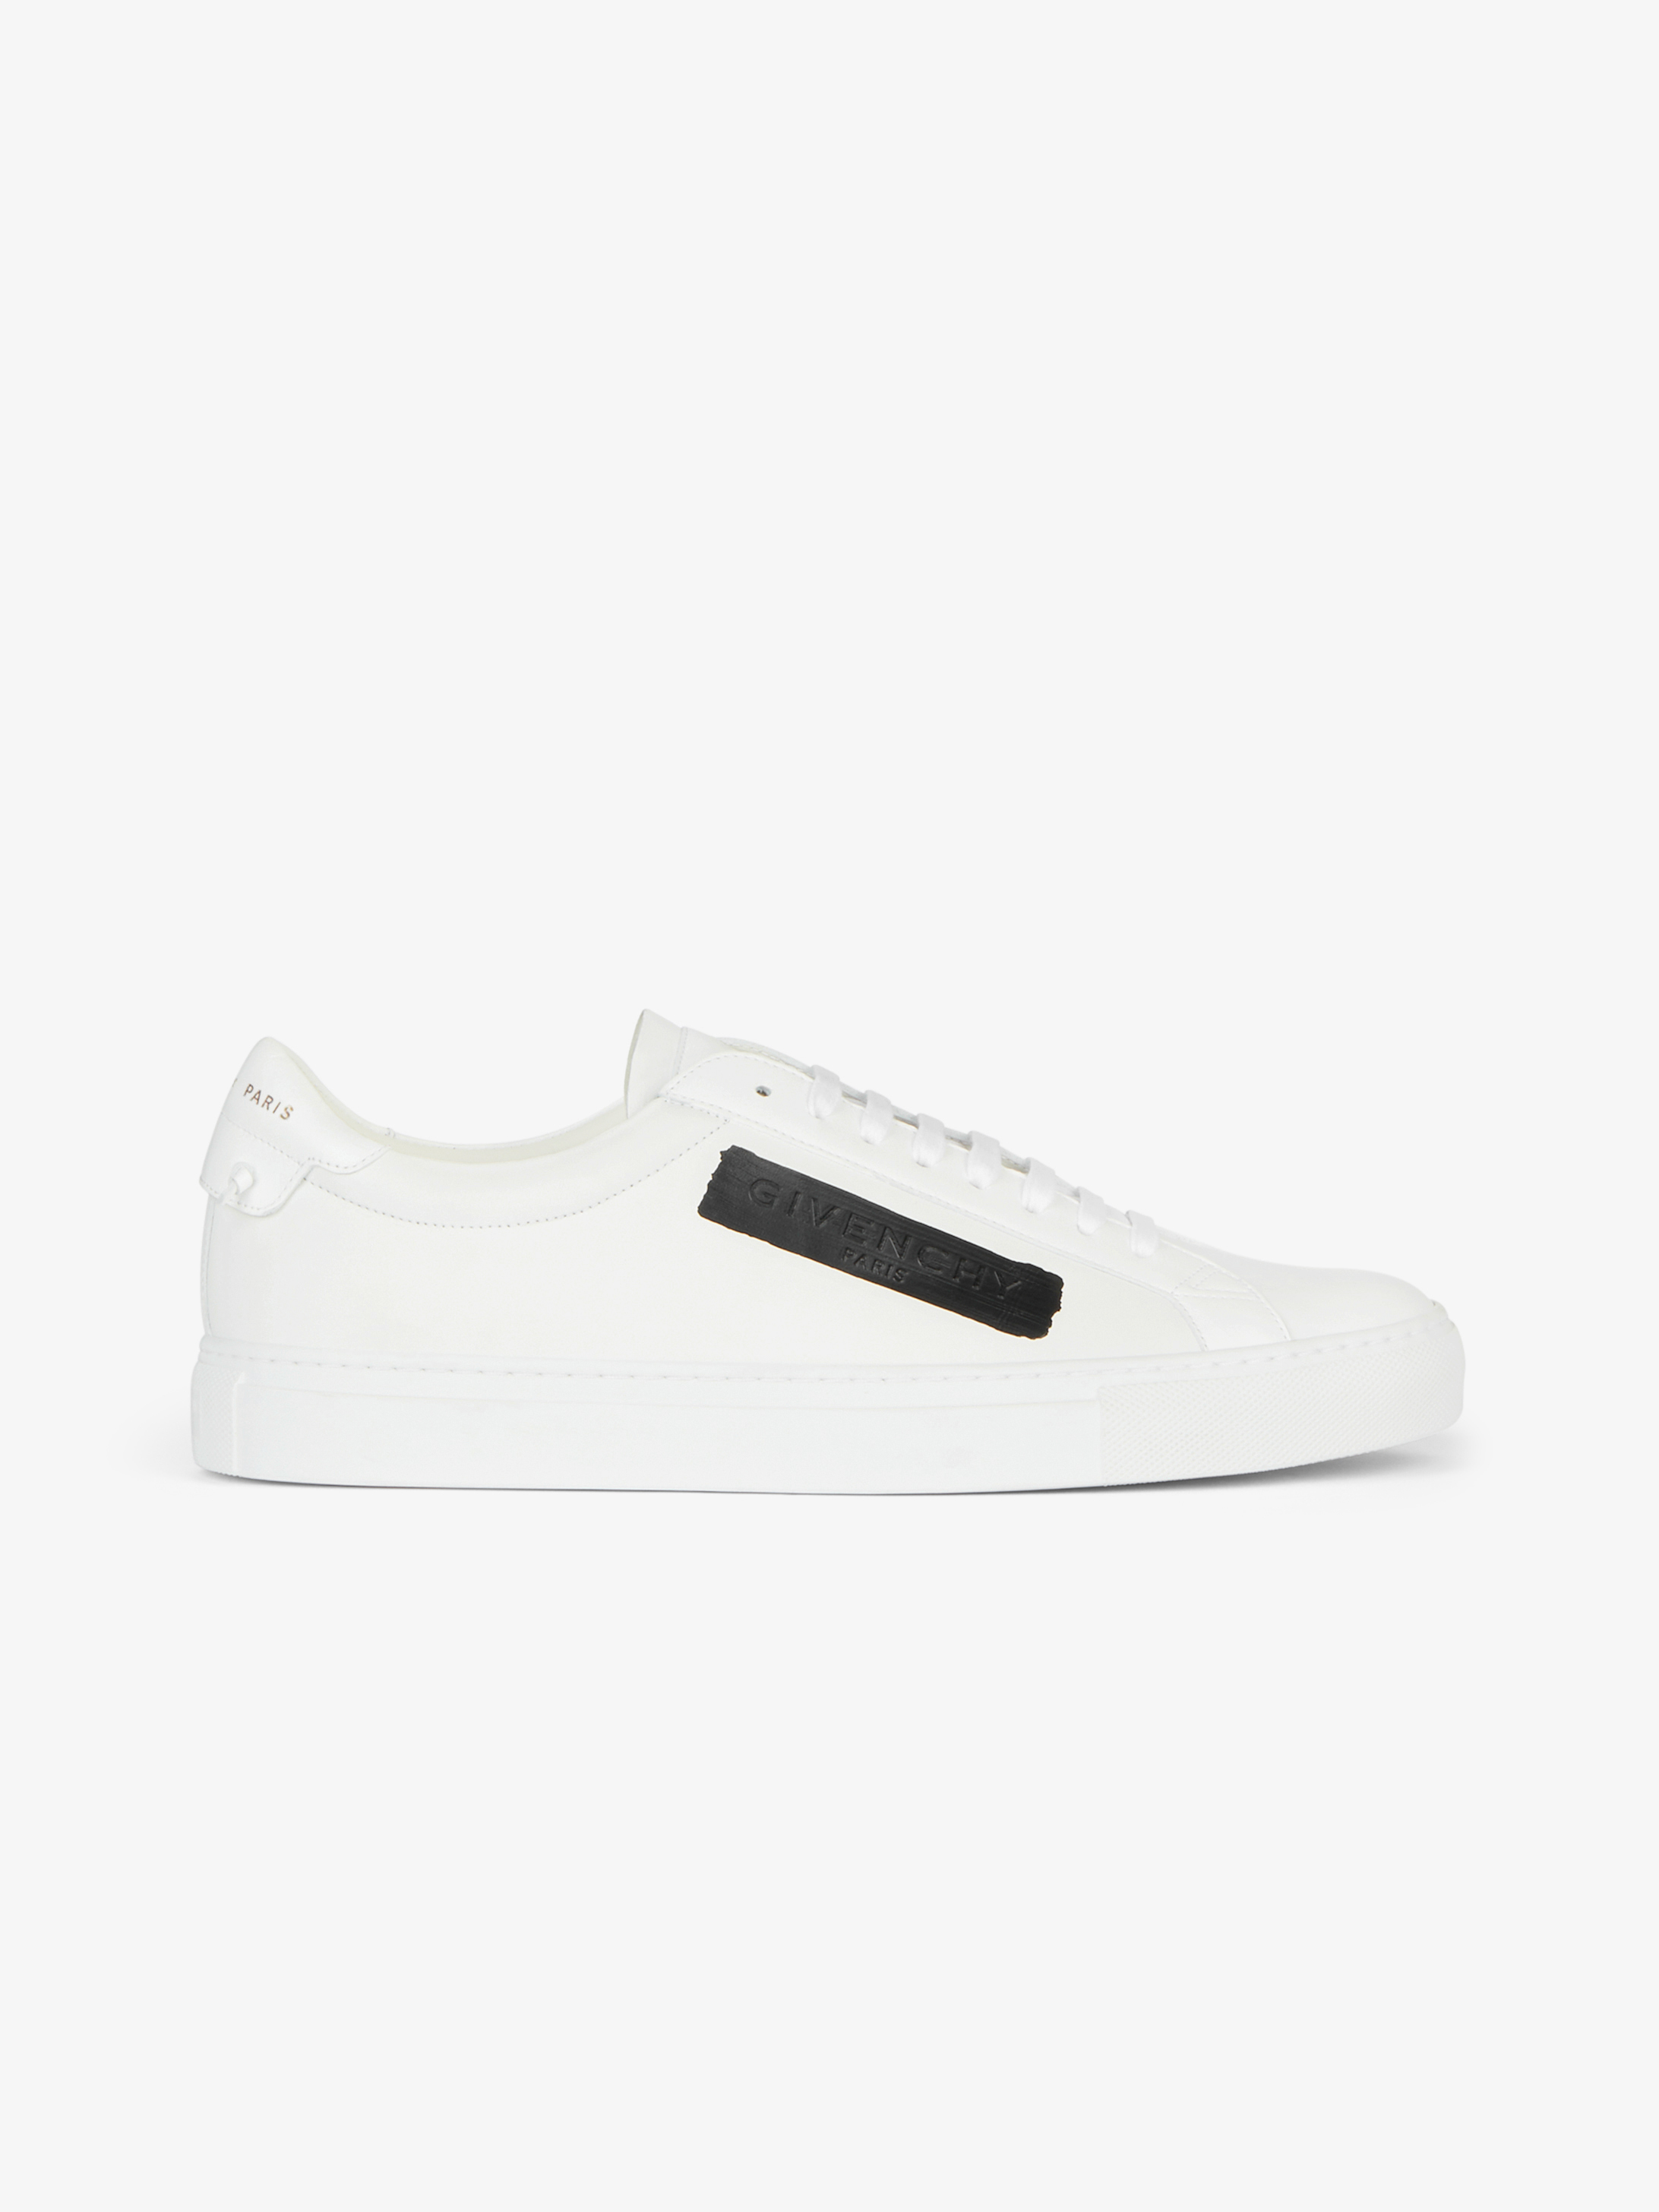 GIVENCHY sneakers in leather with latex band